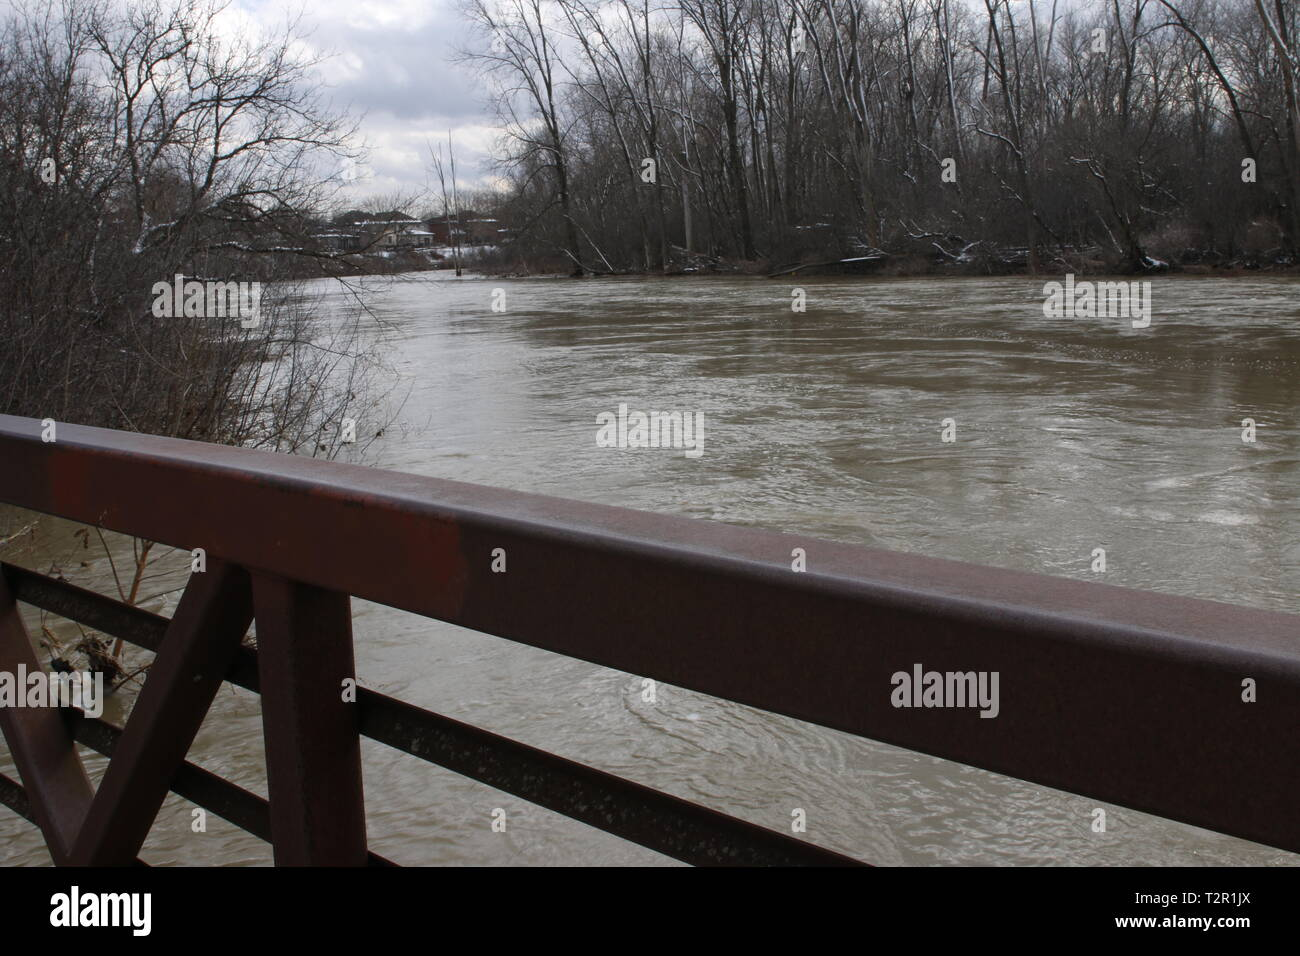 view from a bridge in Canada showing a depressing day - Stock Image